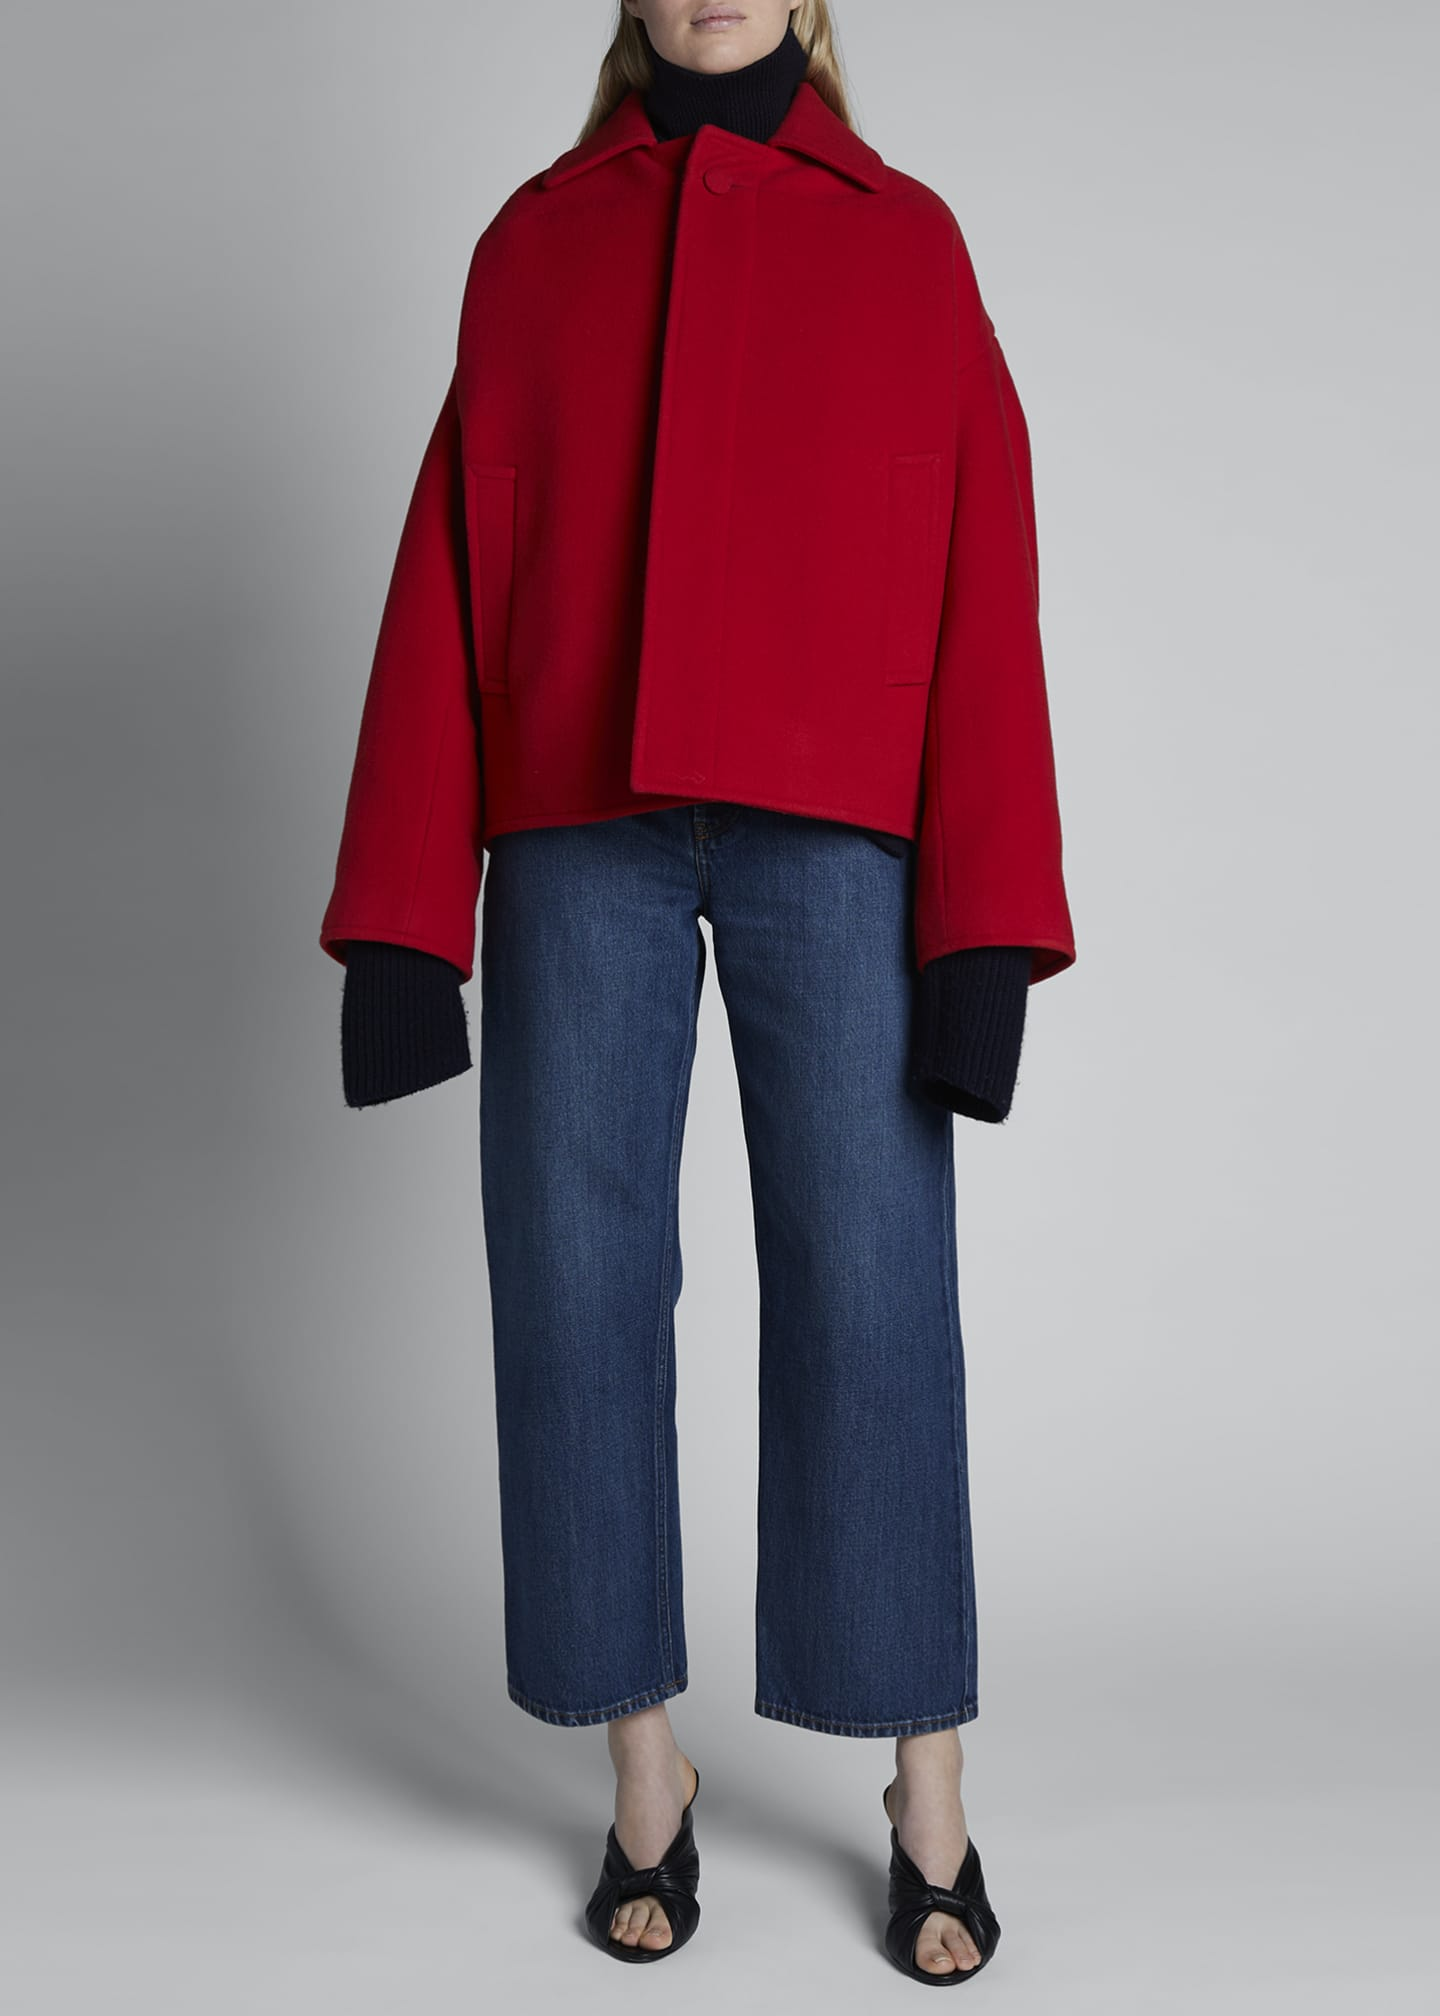 Image 3 of 5: Upside Down Wool-Cashmere Peacoat